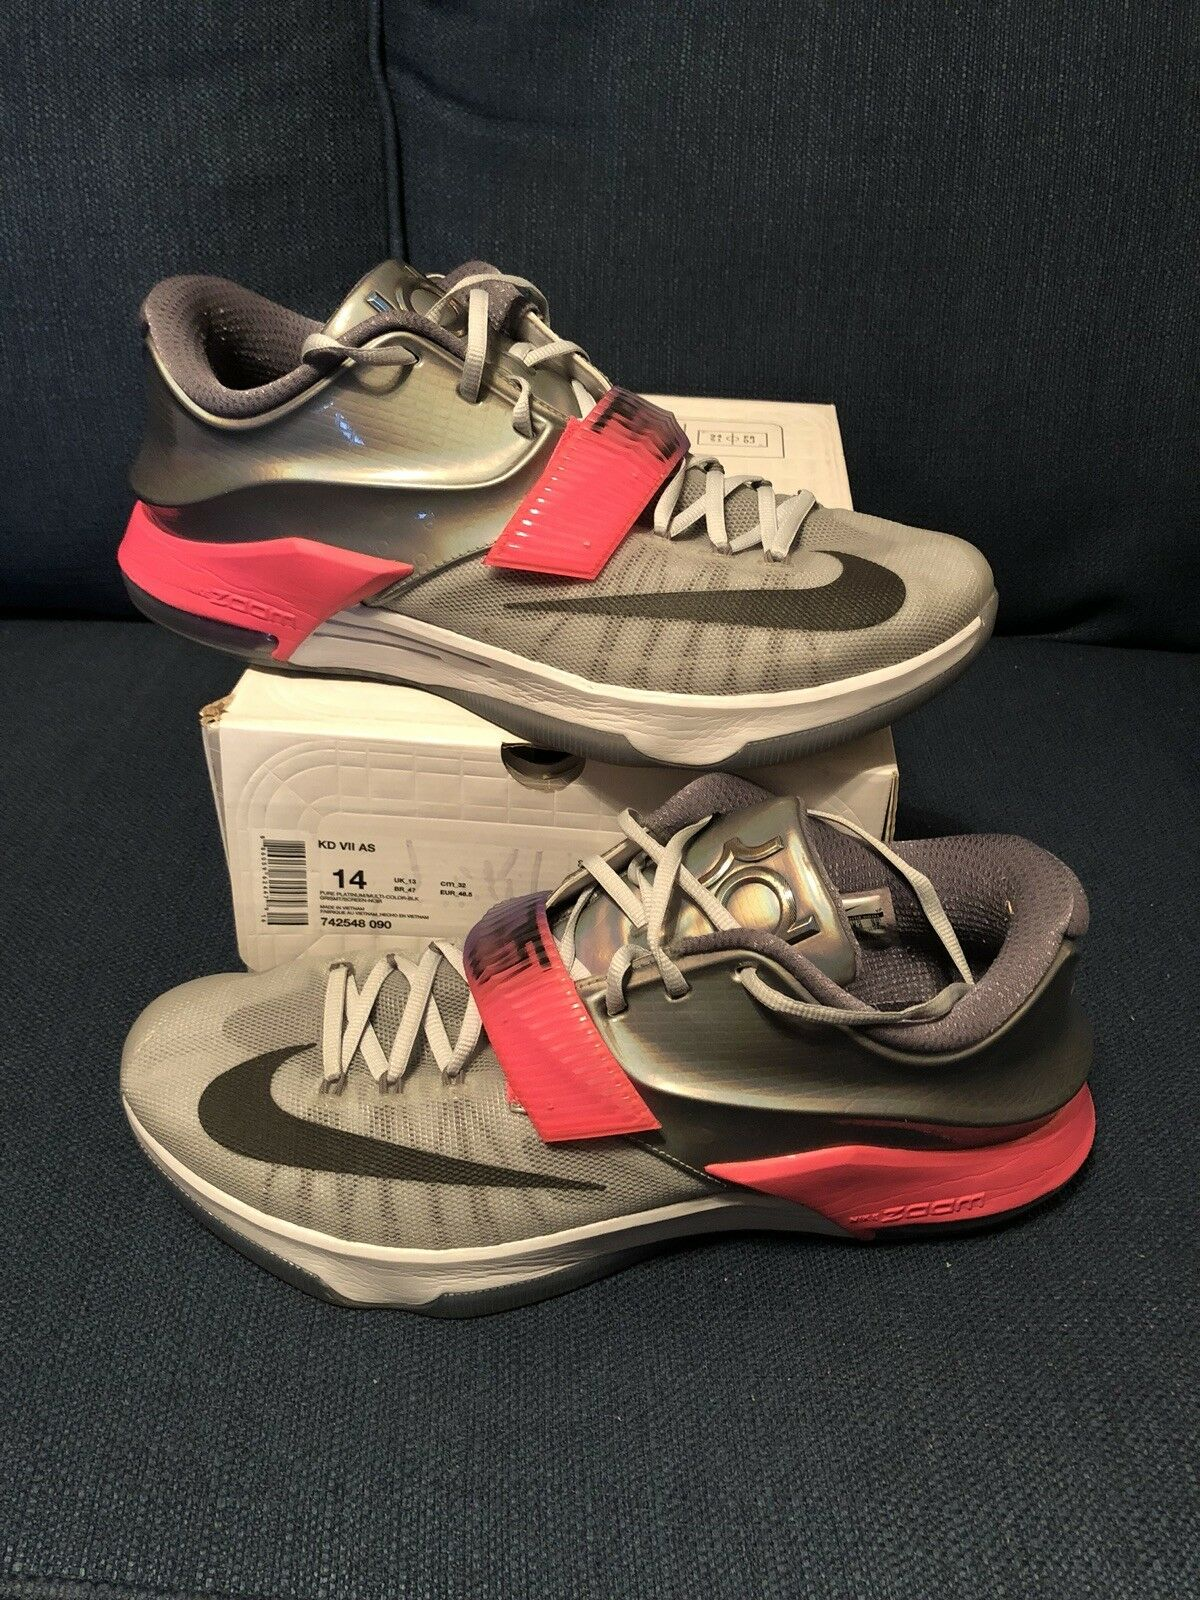 Nike KD 7 All Star Size 14